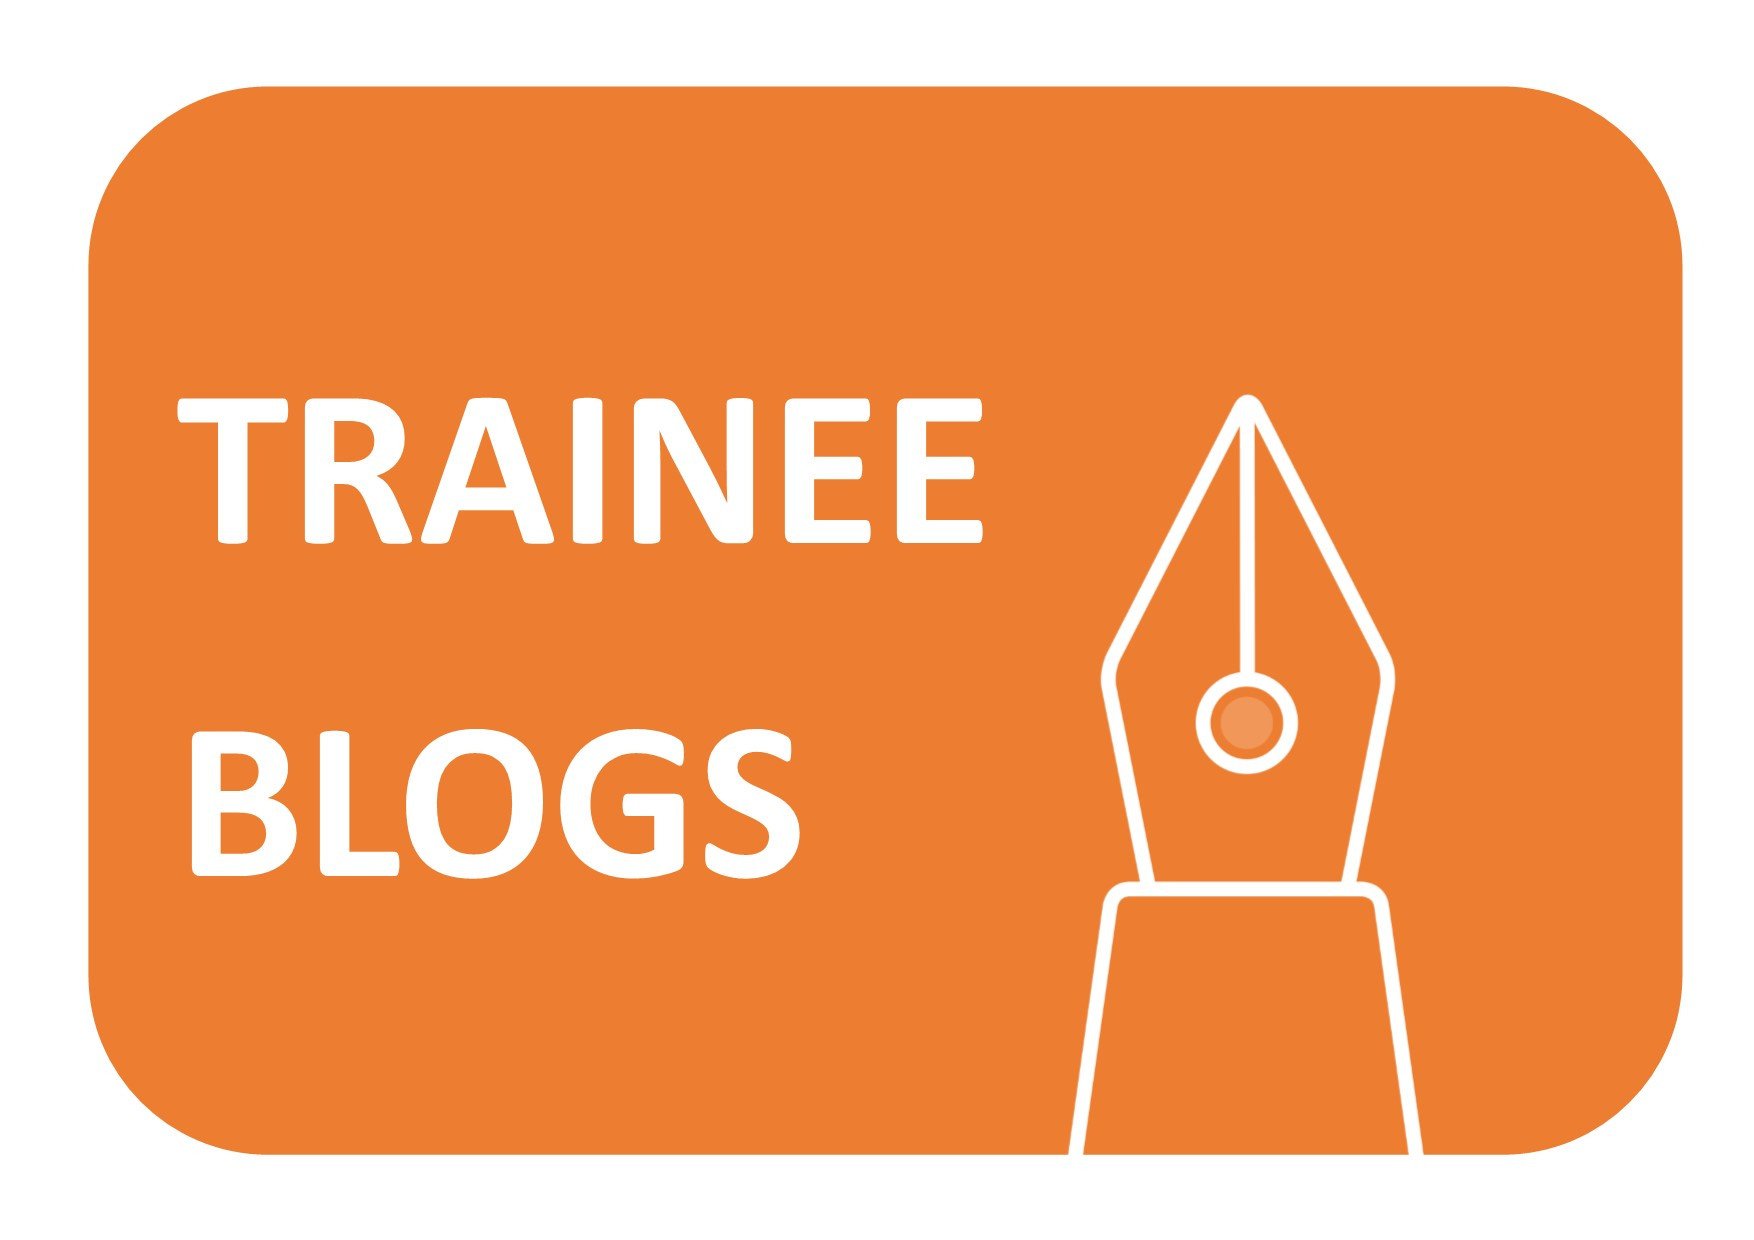 trainee blogs 2